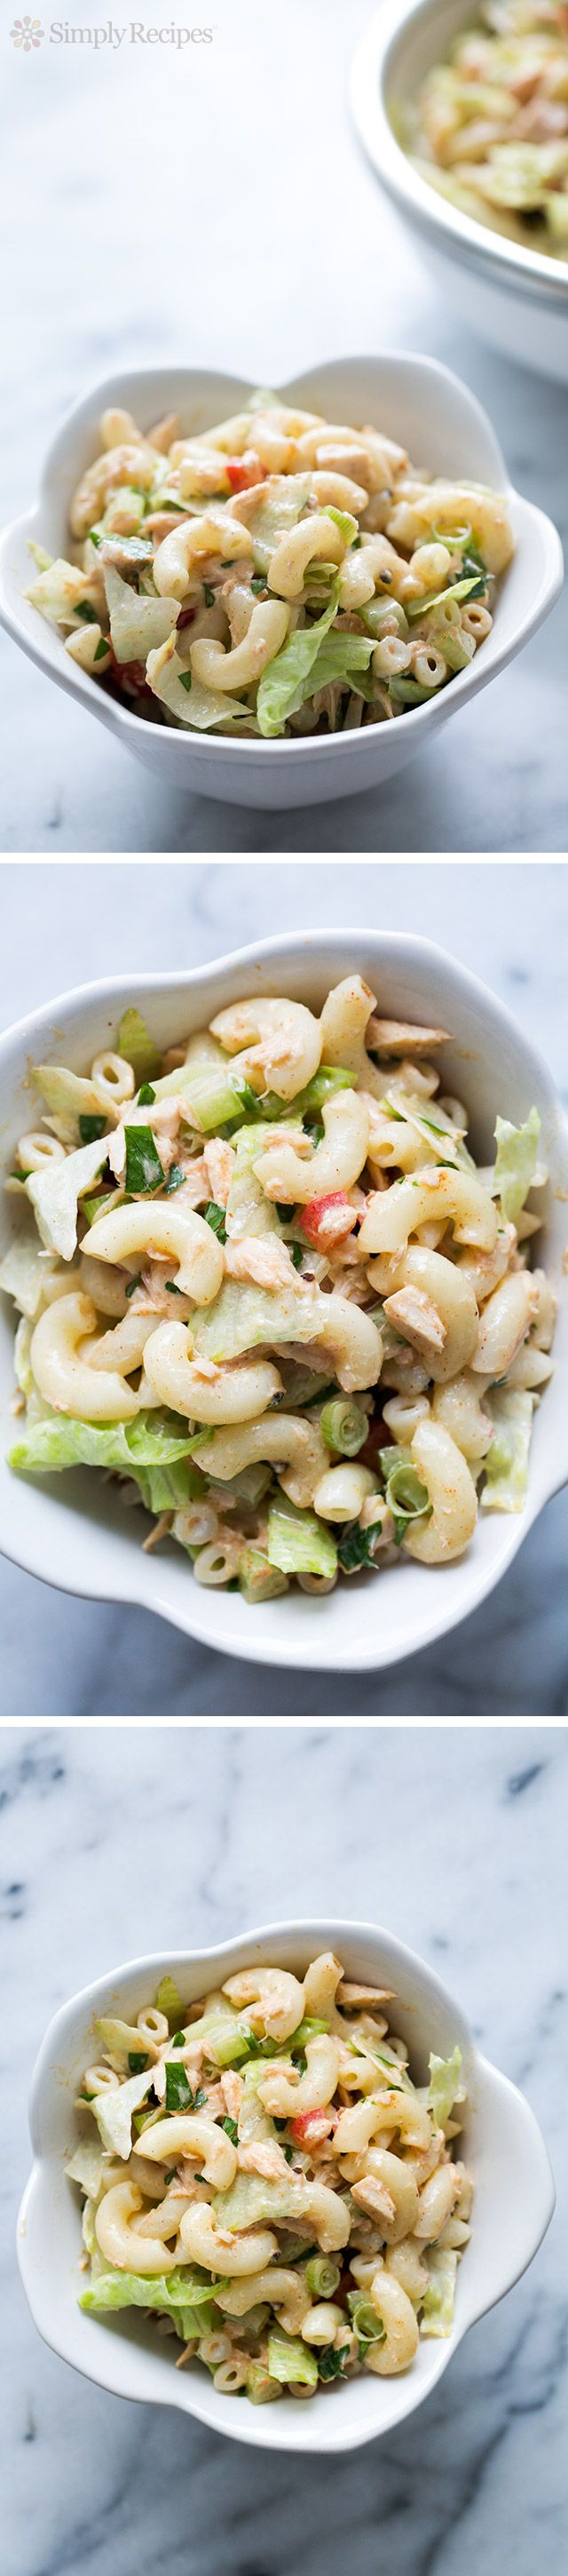 Best 25 macaroni salad with tuna ideas on pinterest for Macaroni salad with tuna fish